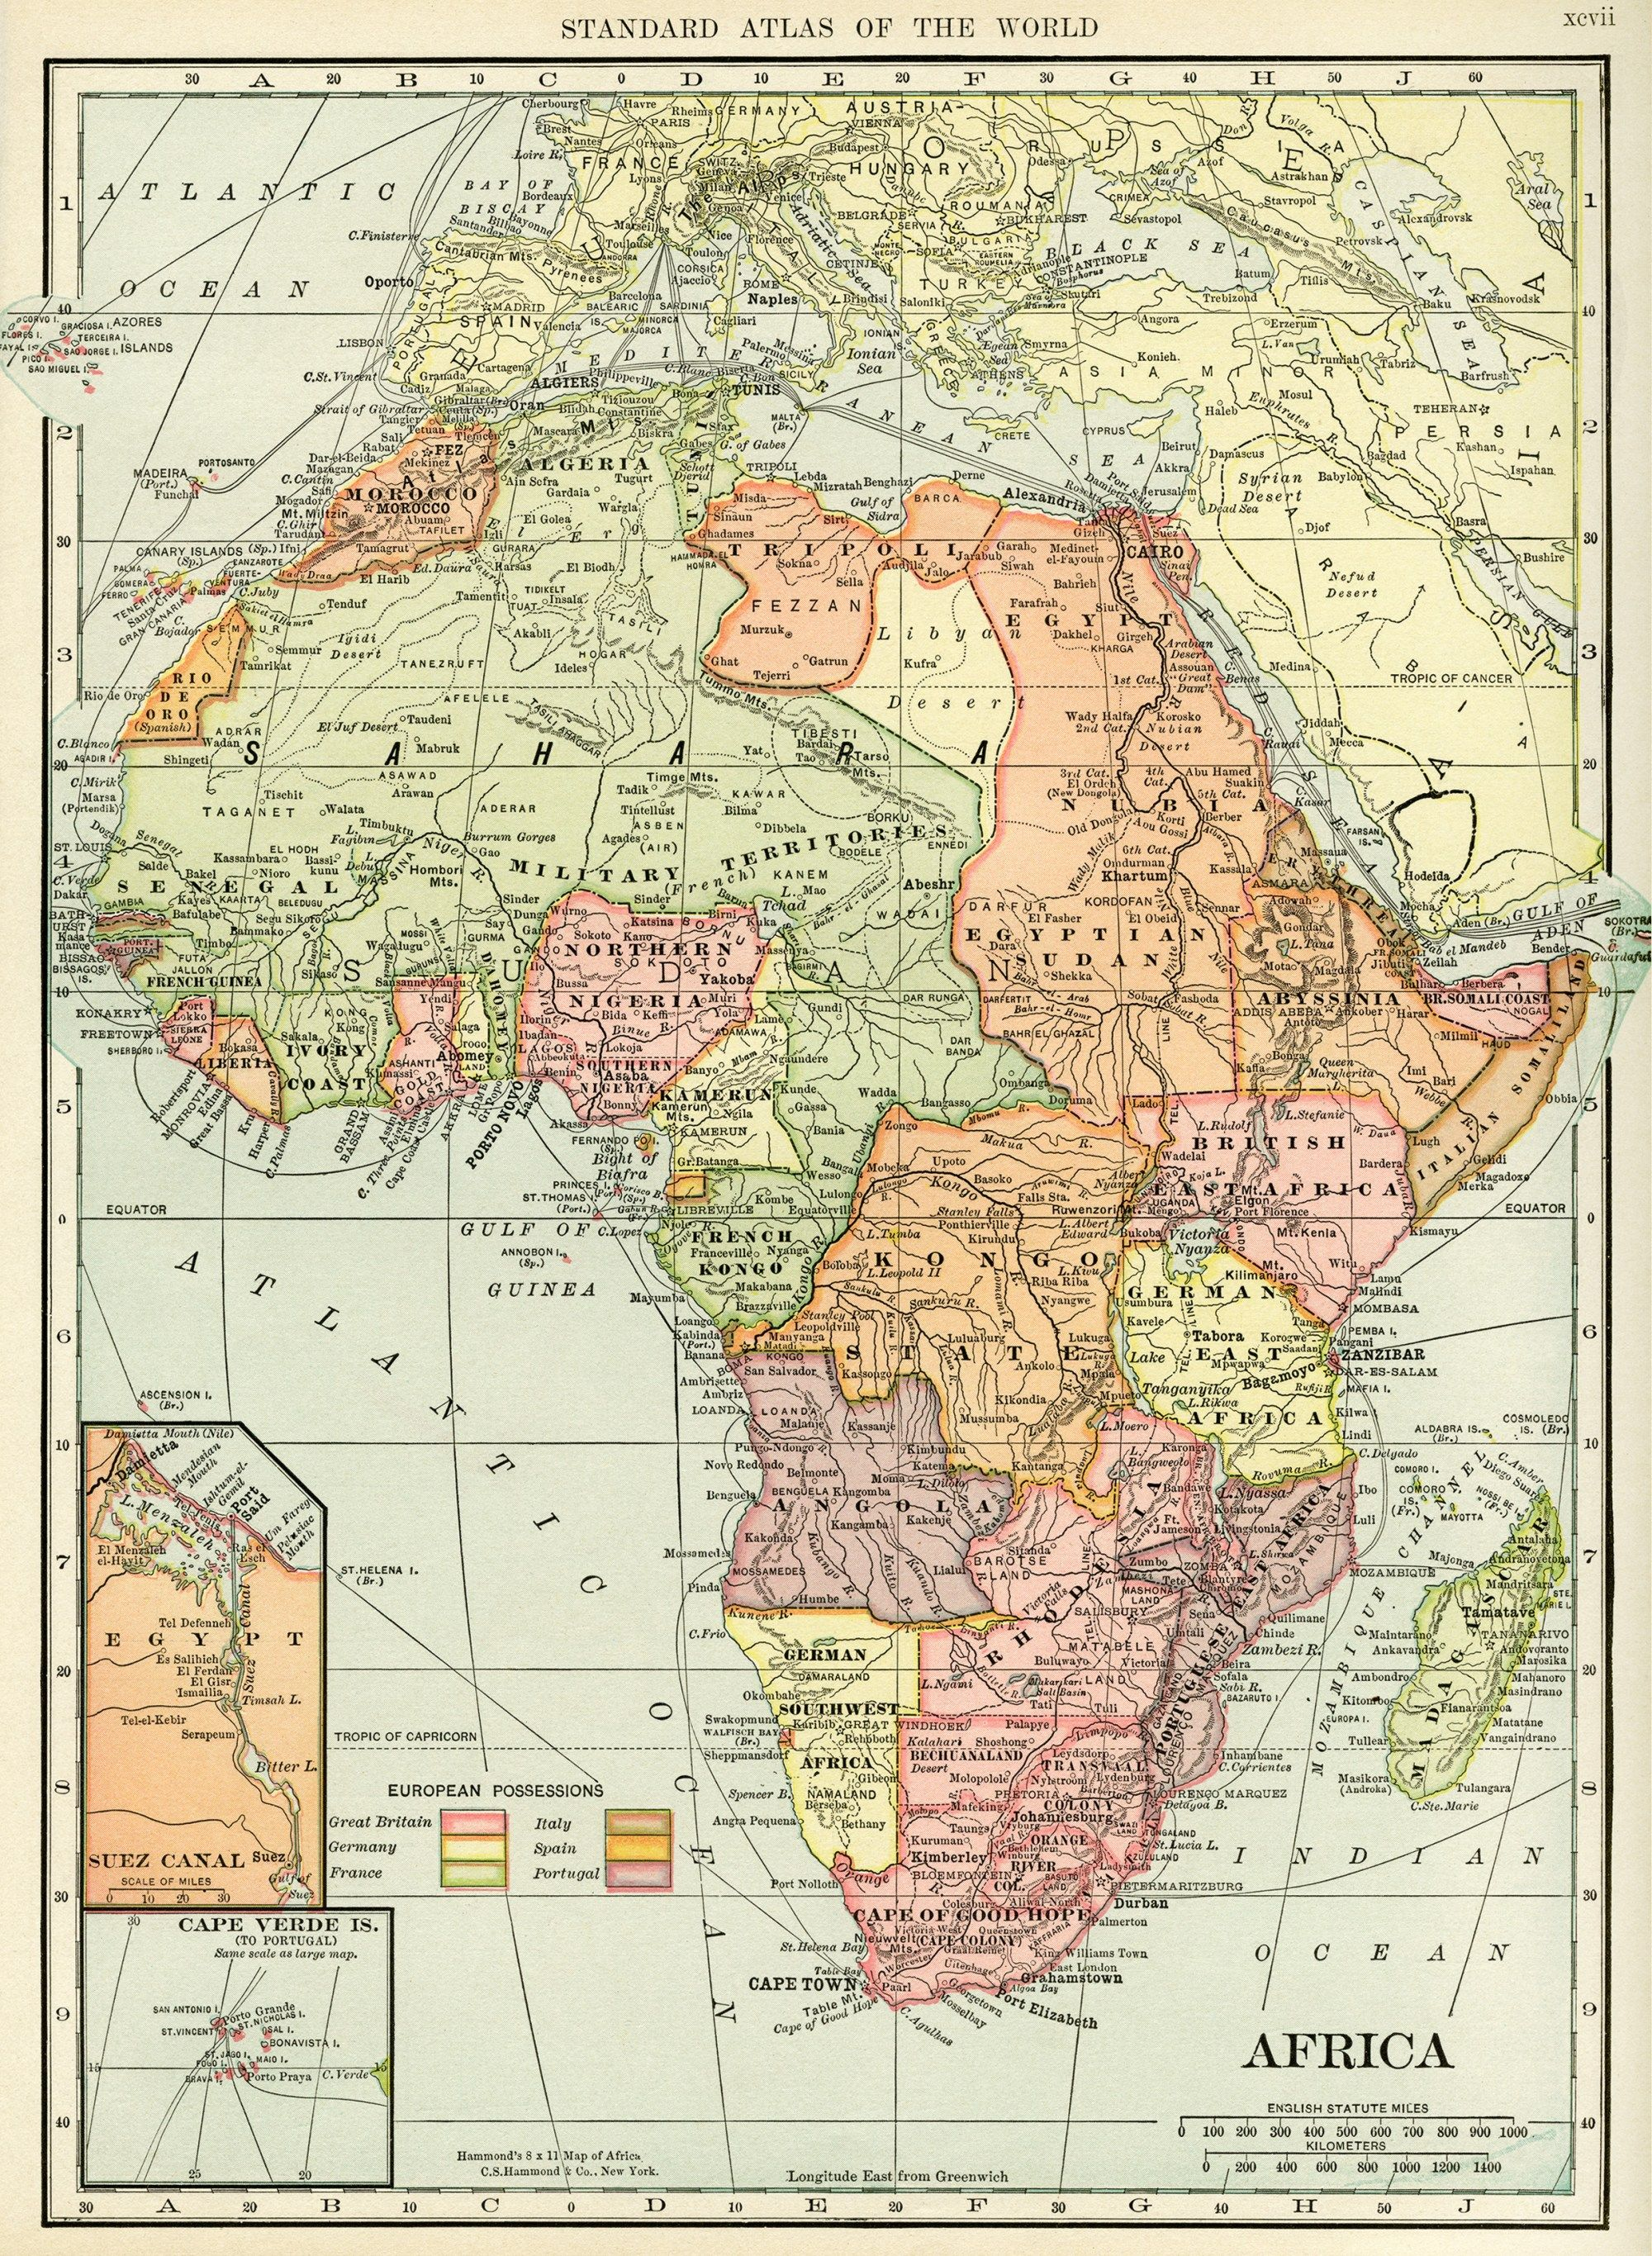 C S Hammond map of Africa, antique historical map, history